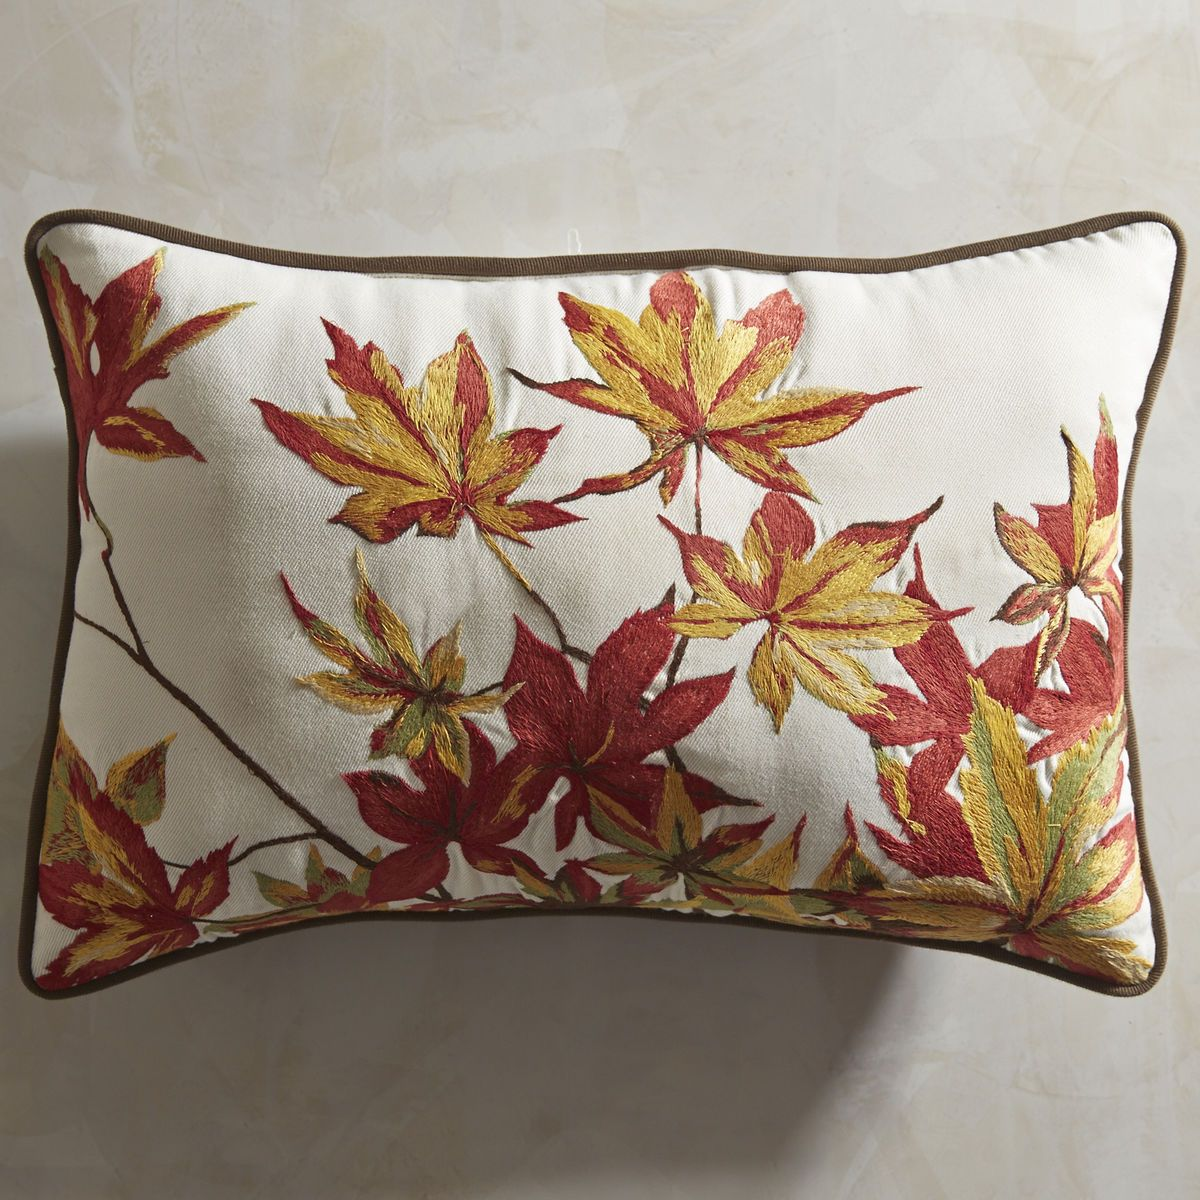 Falling Leaves Embroidered Lumbar Pillow Decorative Holiday Pillows Thanksgiving Pillows Fall Pillows